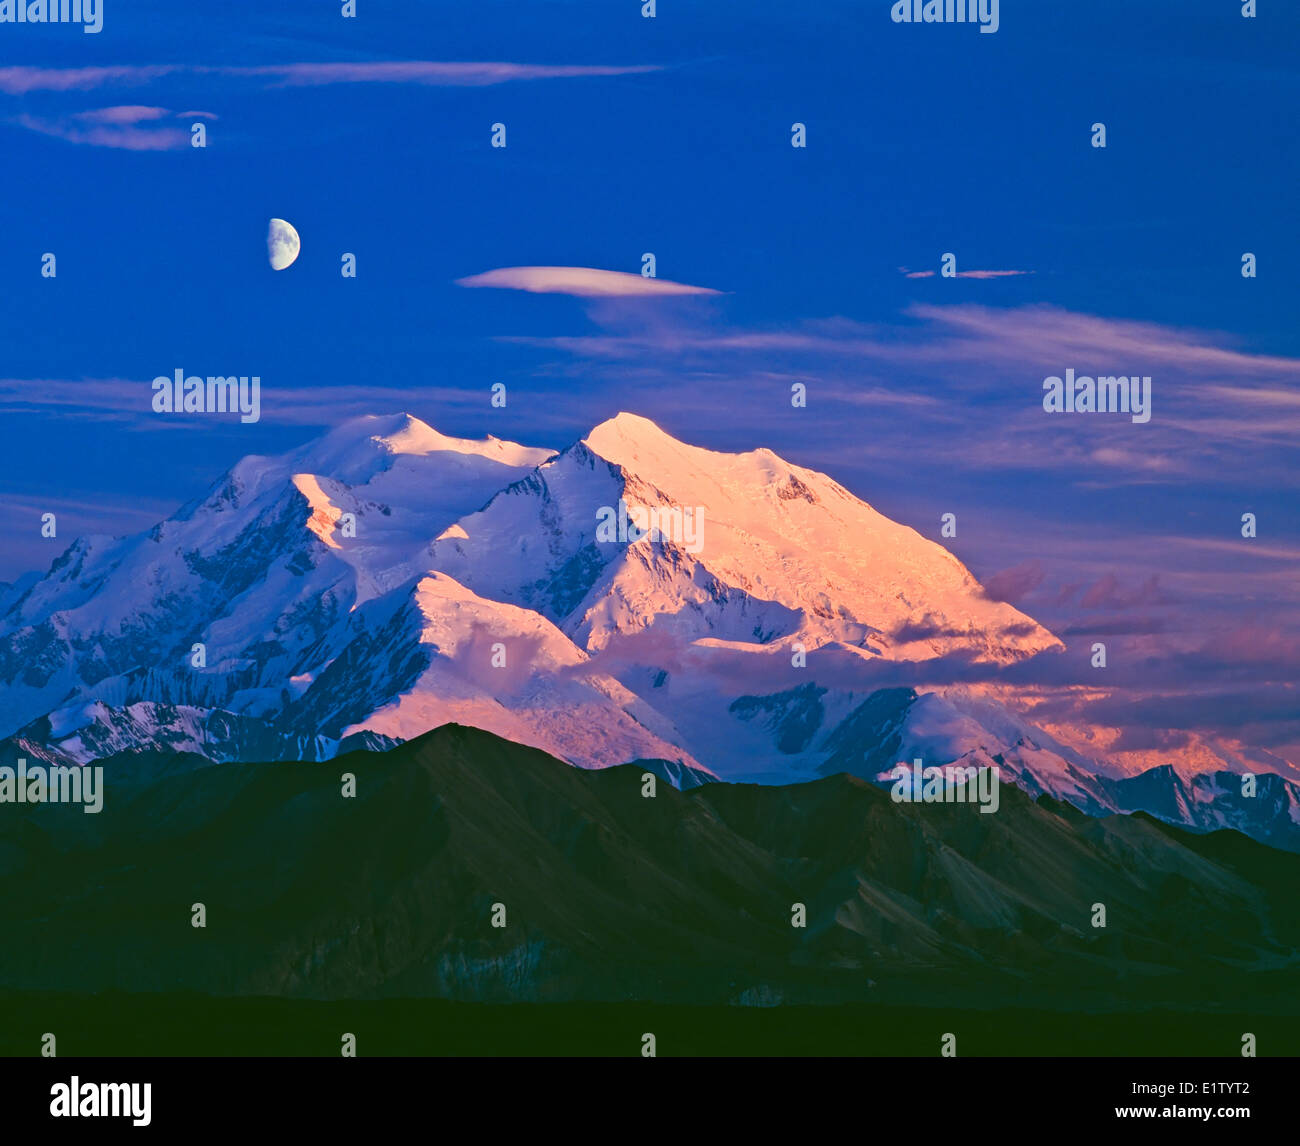 Mount McKinley (Denali) with a half moon at dawn and dusk, twilight, in Denali National Park and Preserve, Alaska, - Stock Image